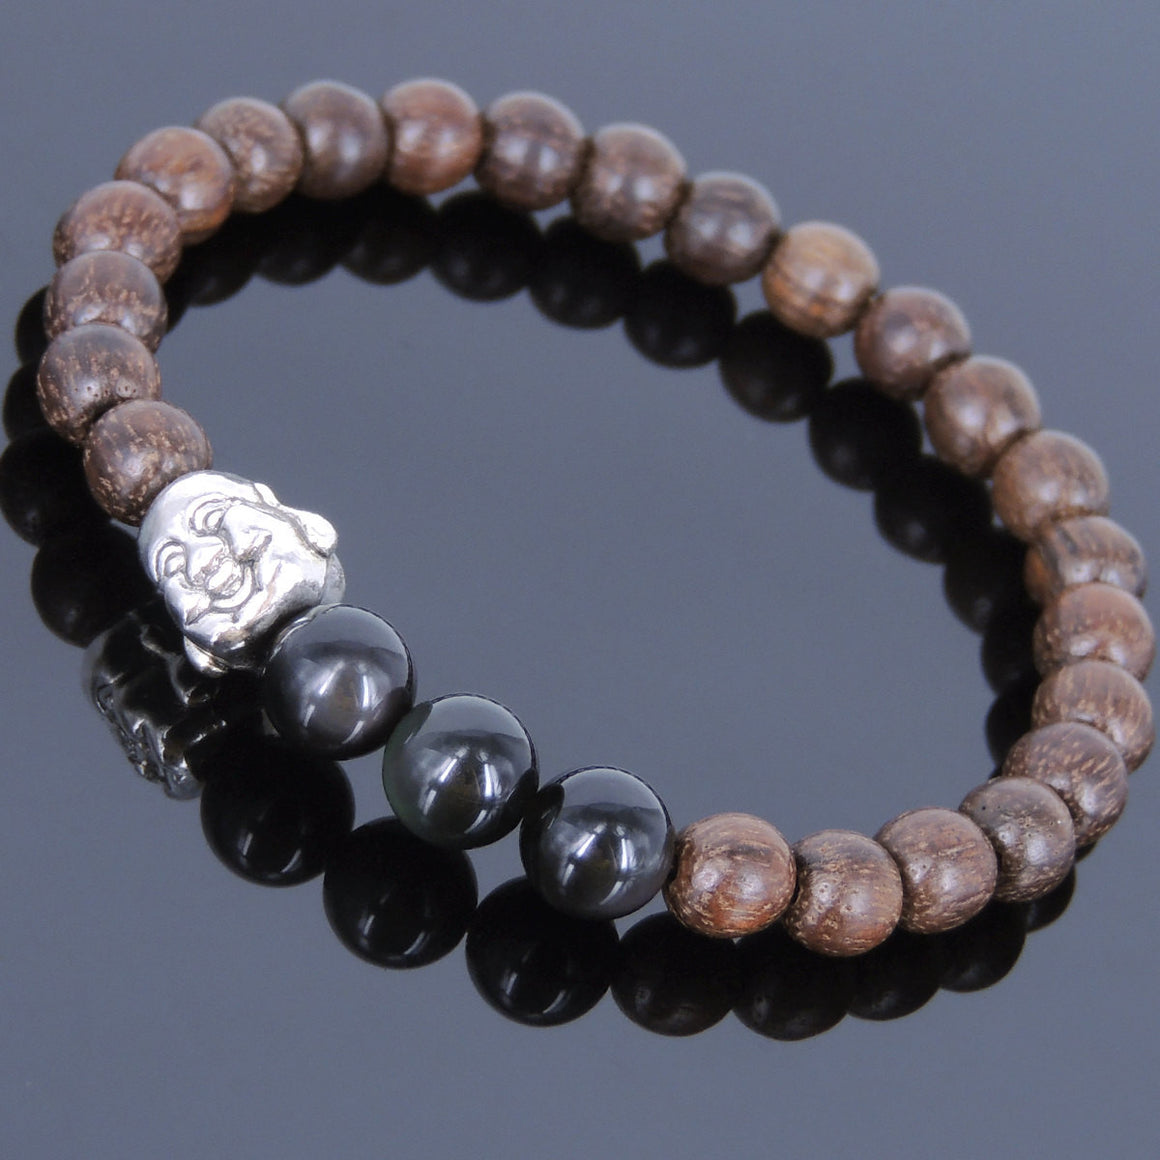 Meditation Red Agarwood & Black Obsidian Gemstone Bracelet with Tibetan Silver Smiling Buddha Meditation Mala Bead - Handmade by Gem & Silver AWB042